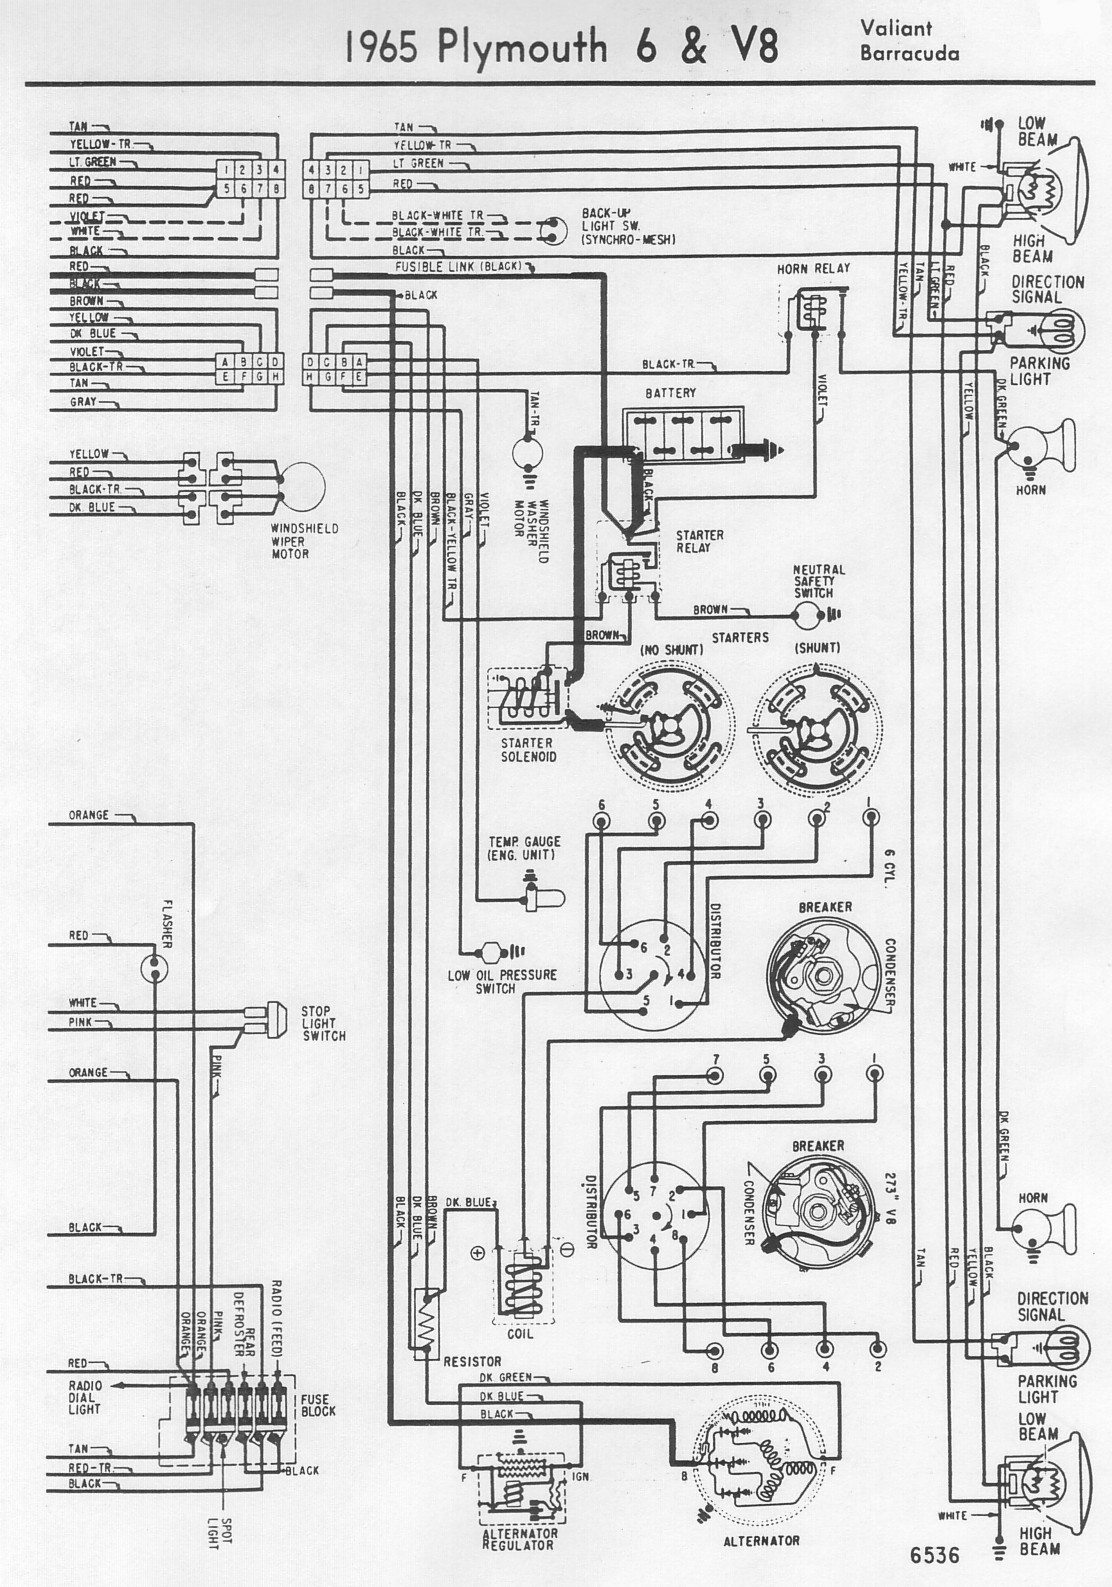 1974 Plymouth Scamp Wiring Diagram Free For You Auto 1970 1960 Chevy Truck Valiant Simple Schema Rh 6 Aspire Atlantis De Duster 1971